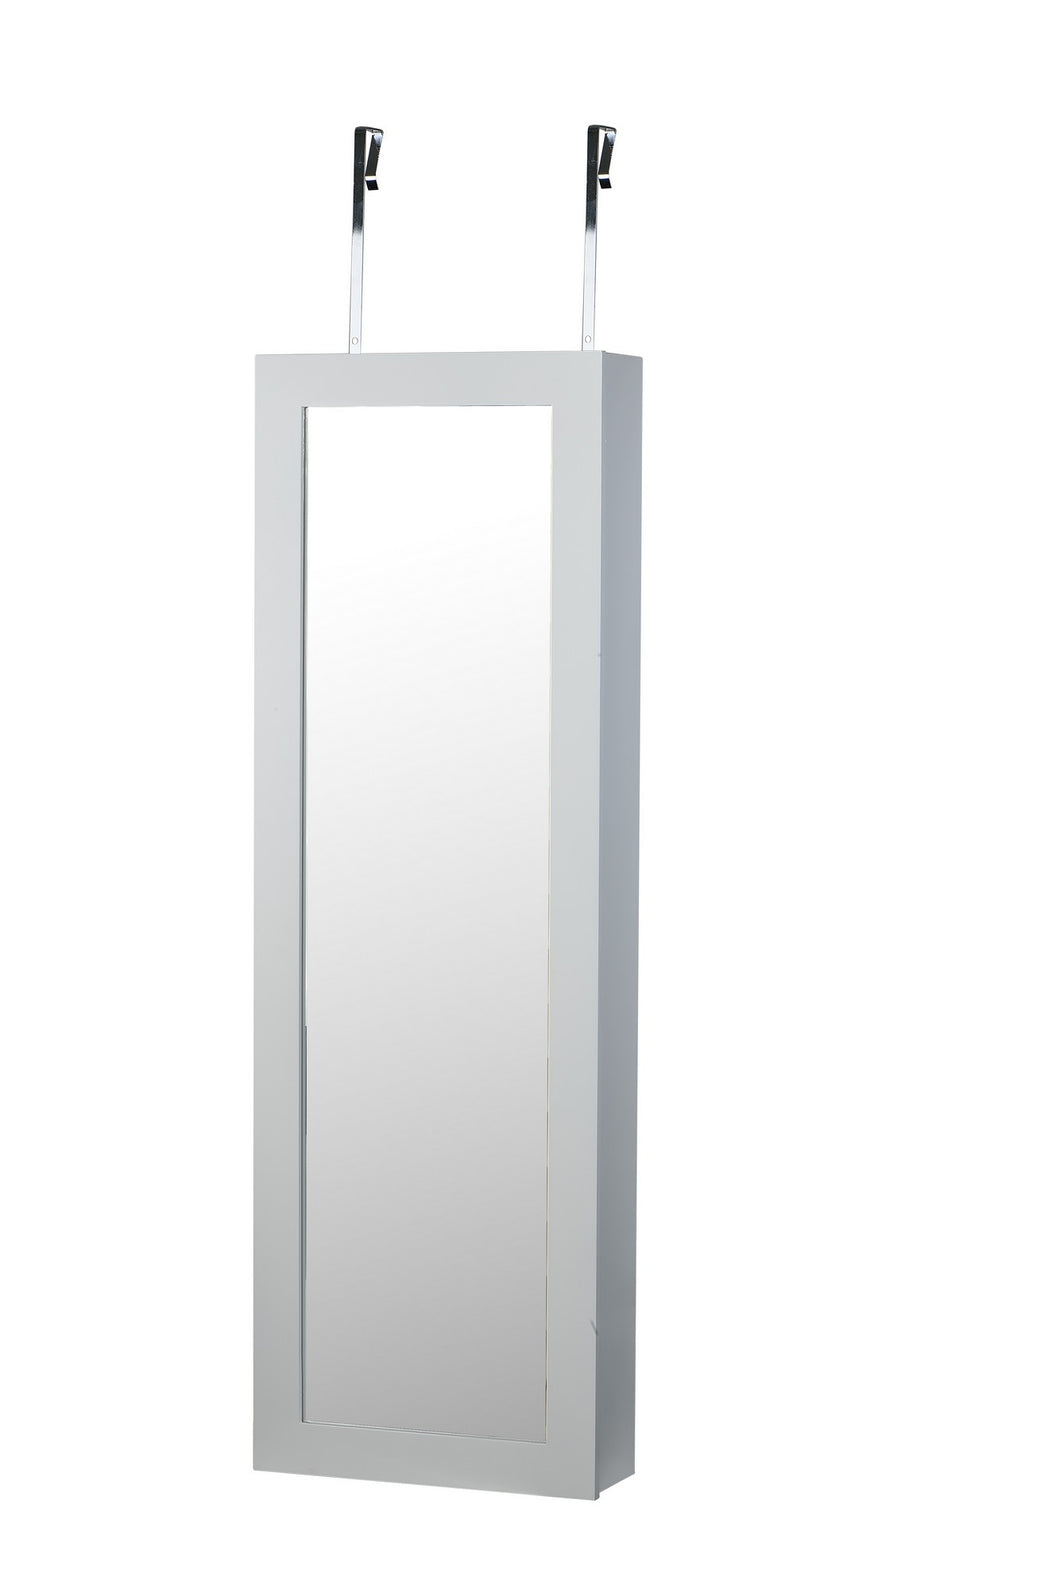 Image of: Makeup Organizer Mirror Over Door Wall Mount Jewelry Cabinet Armoire V Btexpert